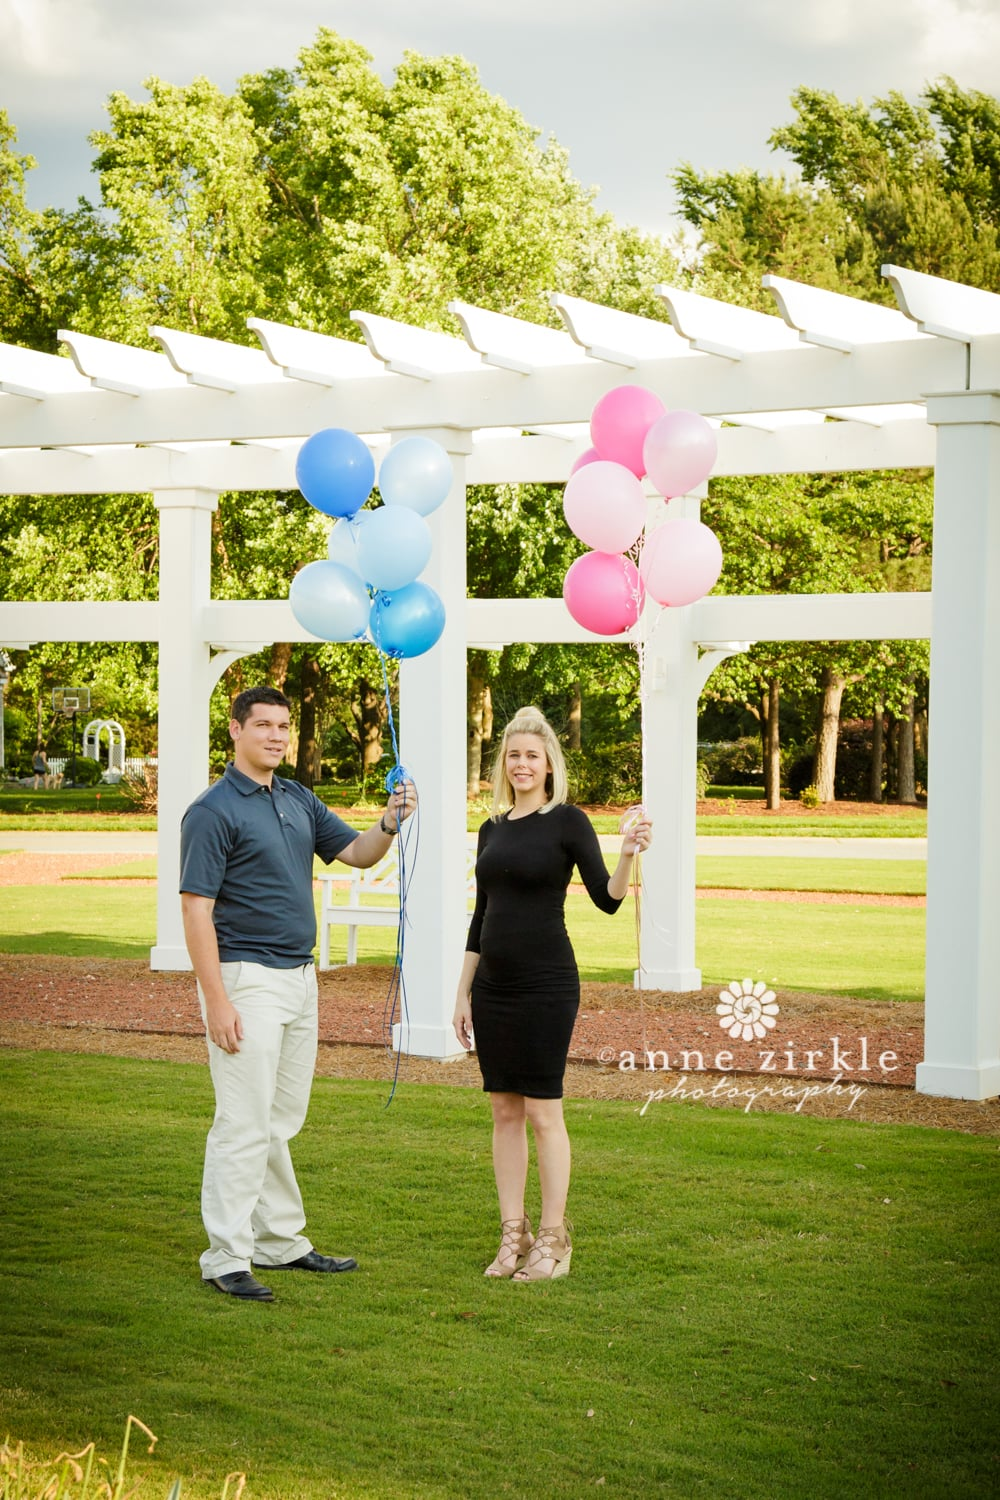 gender-reveal-balloons